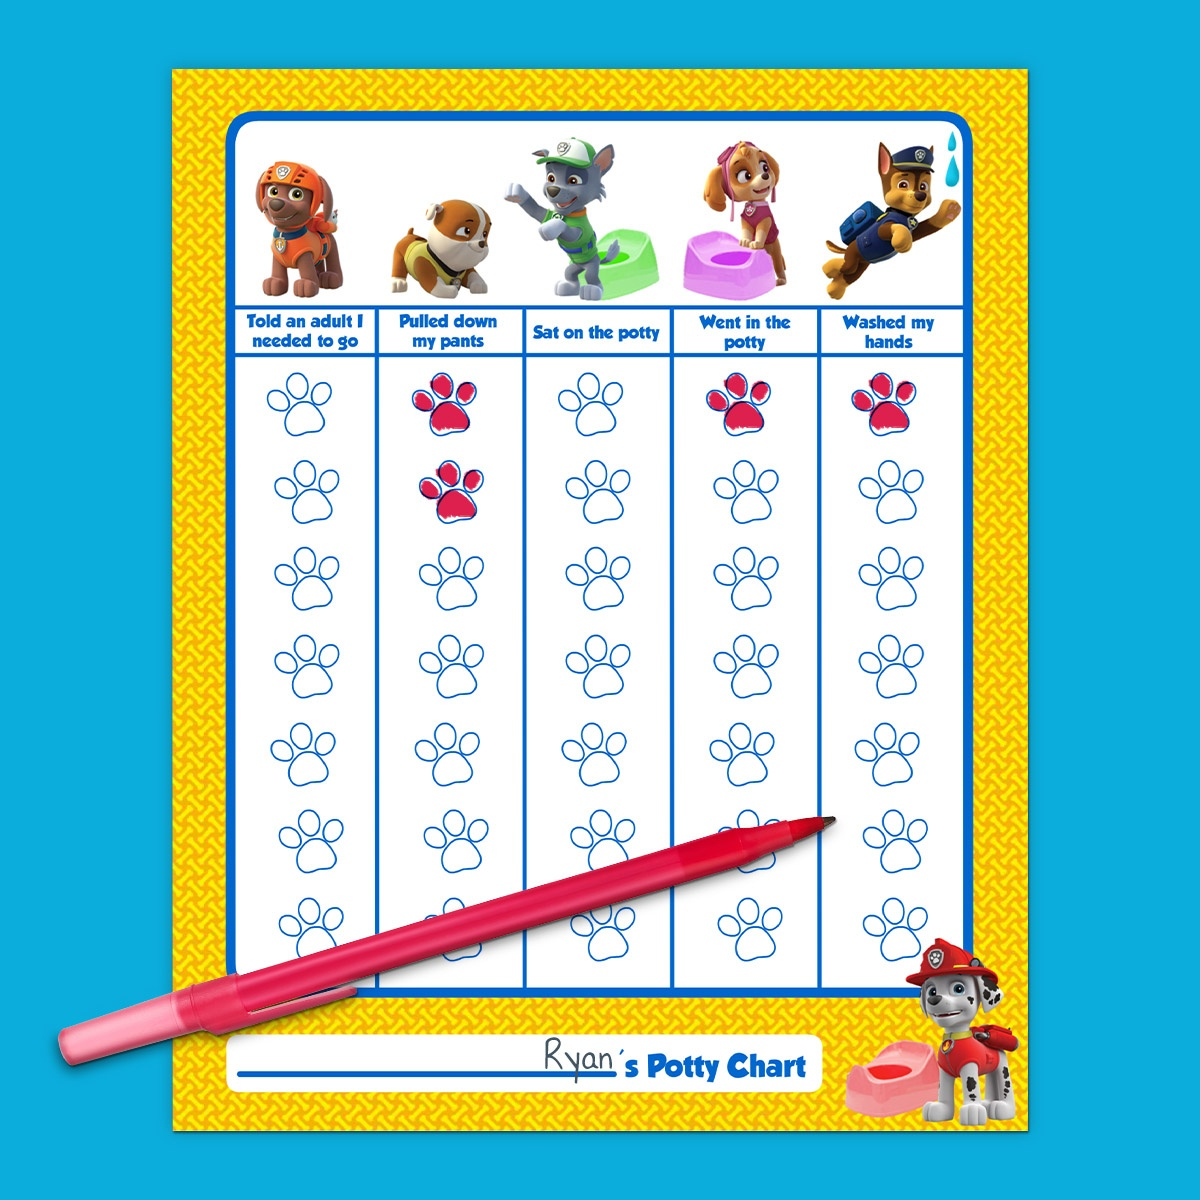 Paw Patrol Potty Training Chart | Nickelodeon Parents - Free Printable Potty Charts